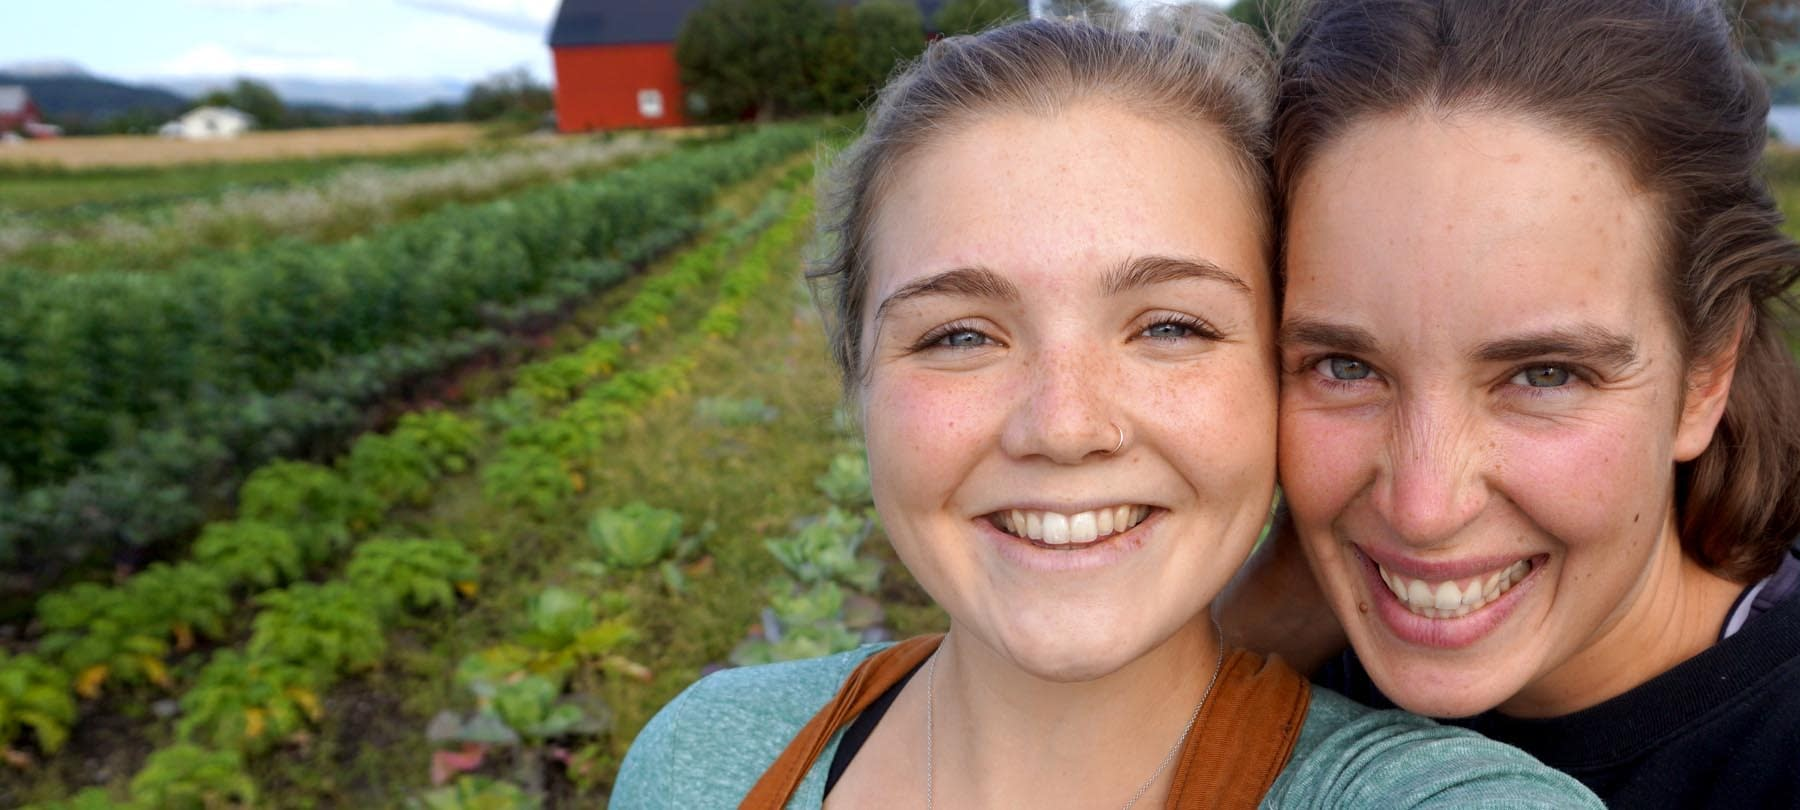 Happy girls in an organic vegetable field